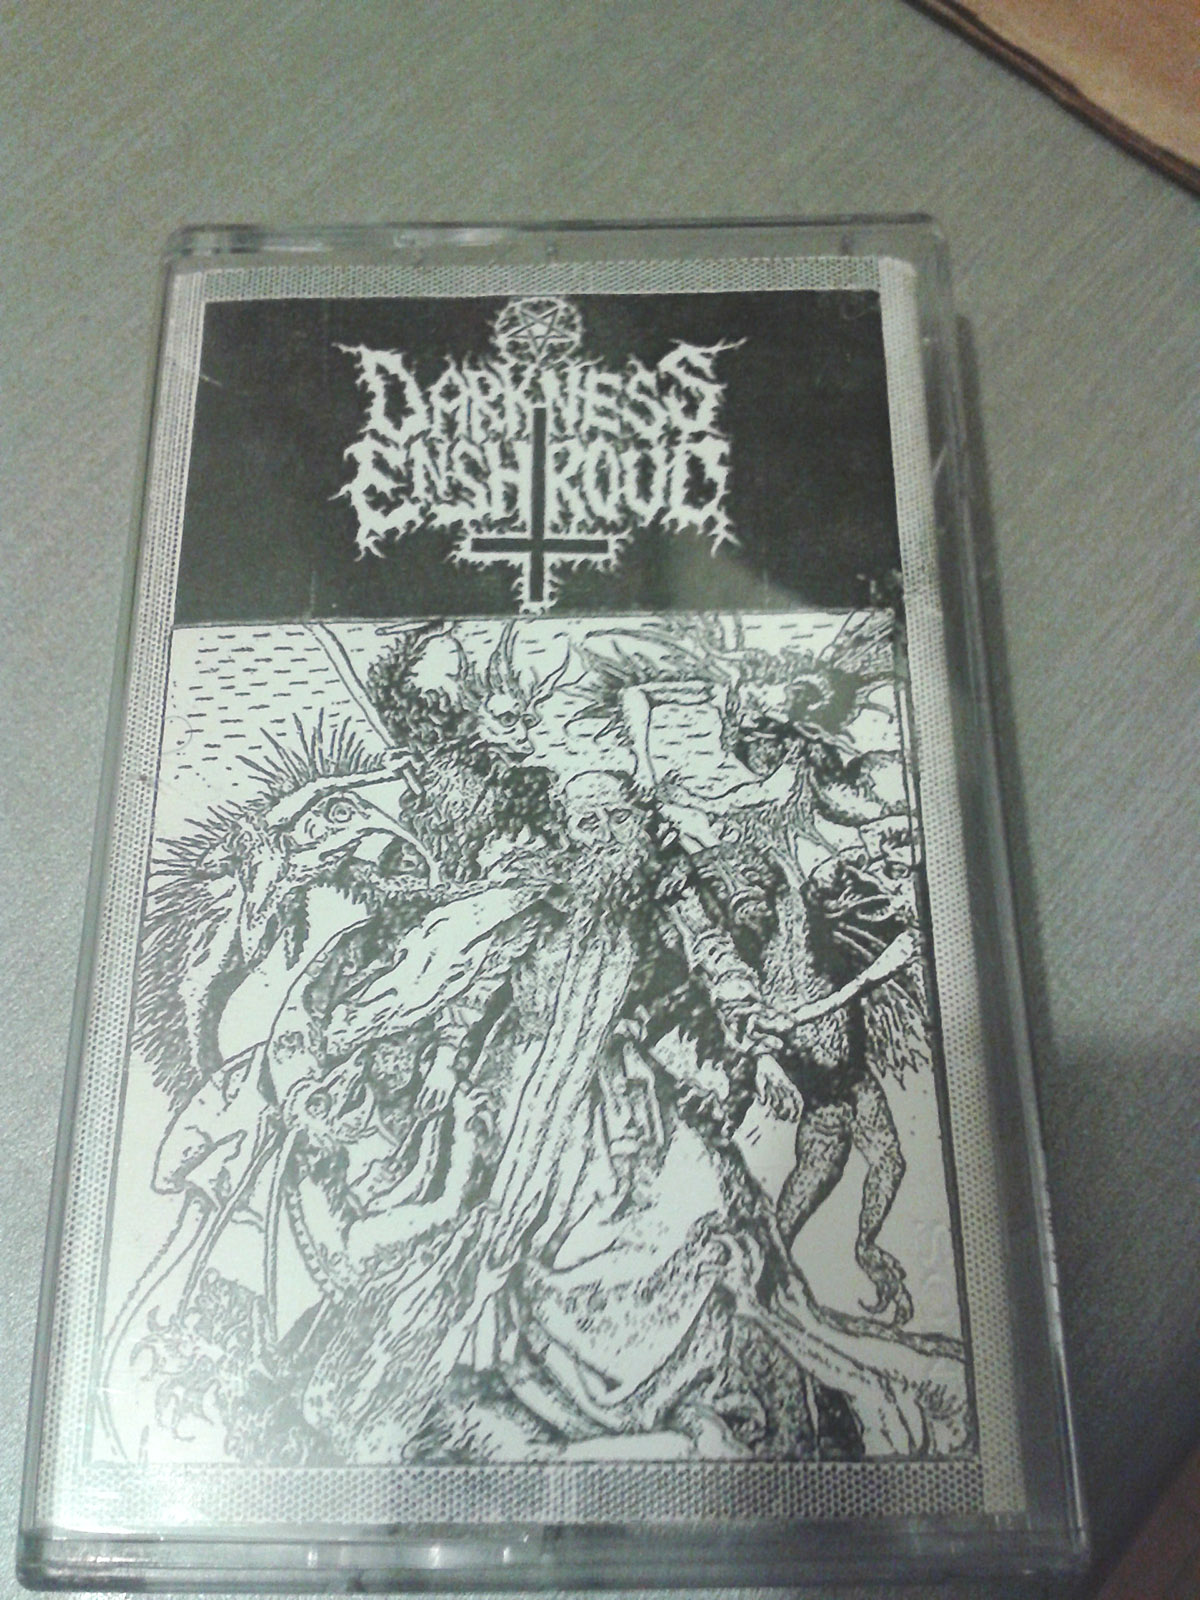 DARKNESS ENSHROUD demo tape, courtesy of Oliver Mitchell